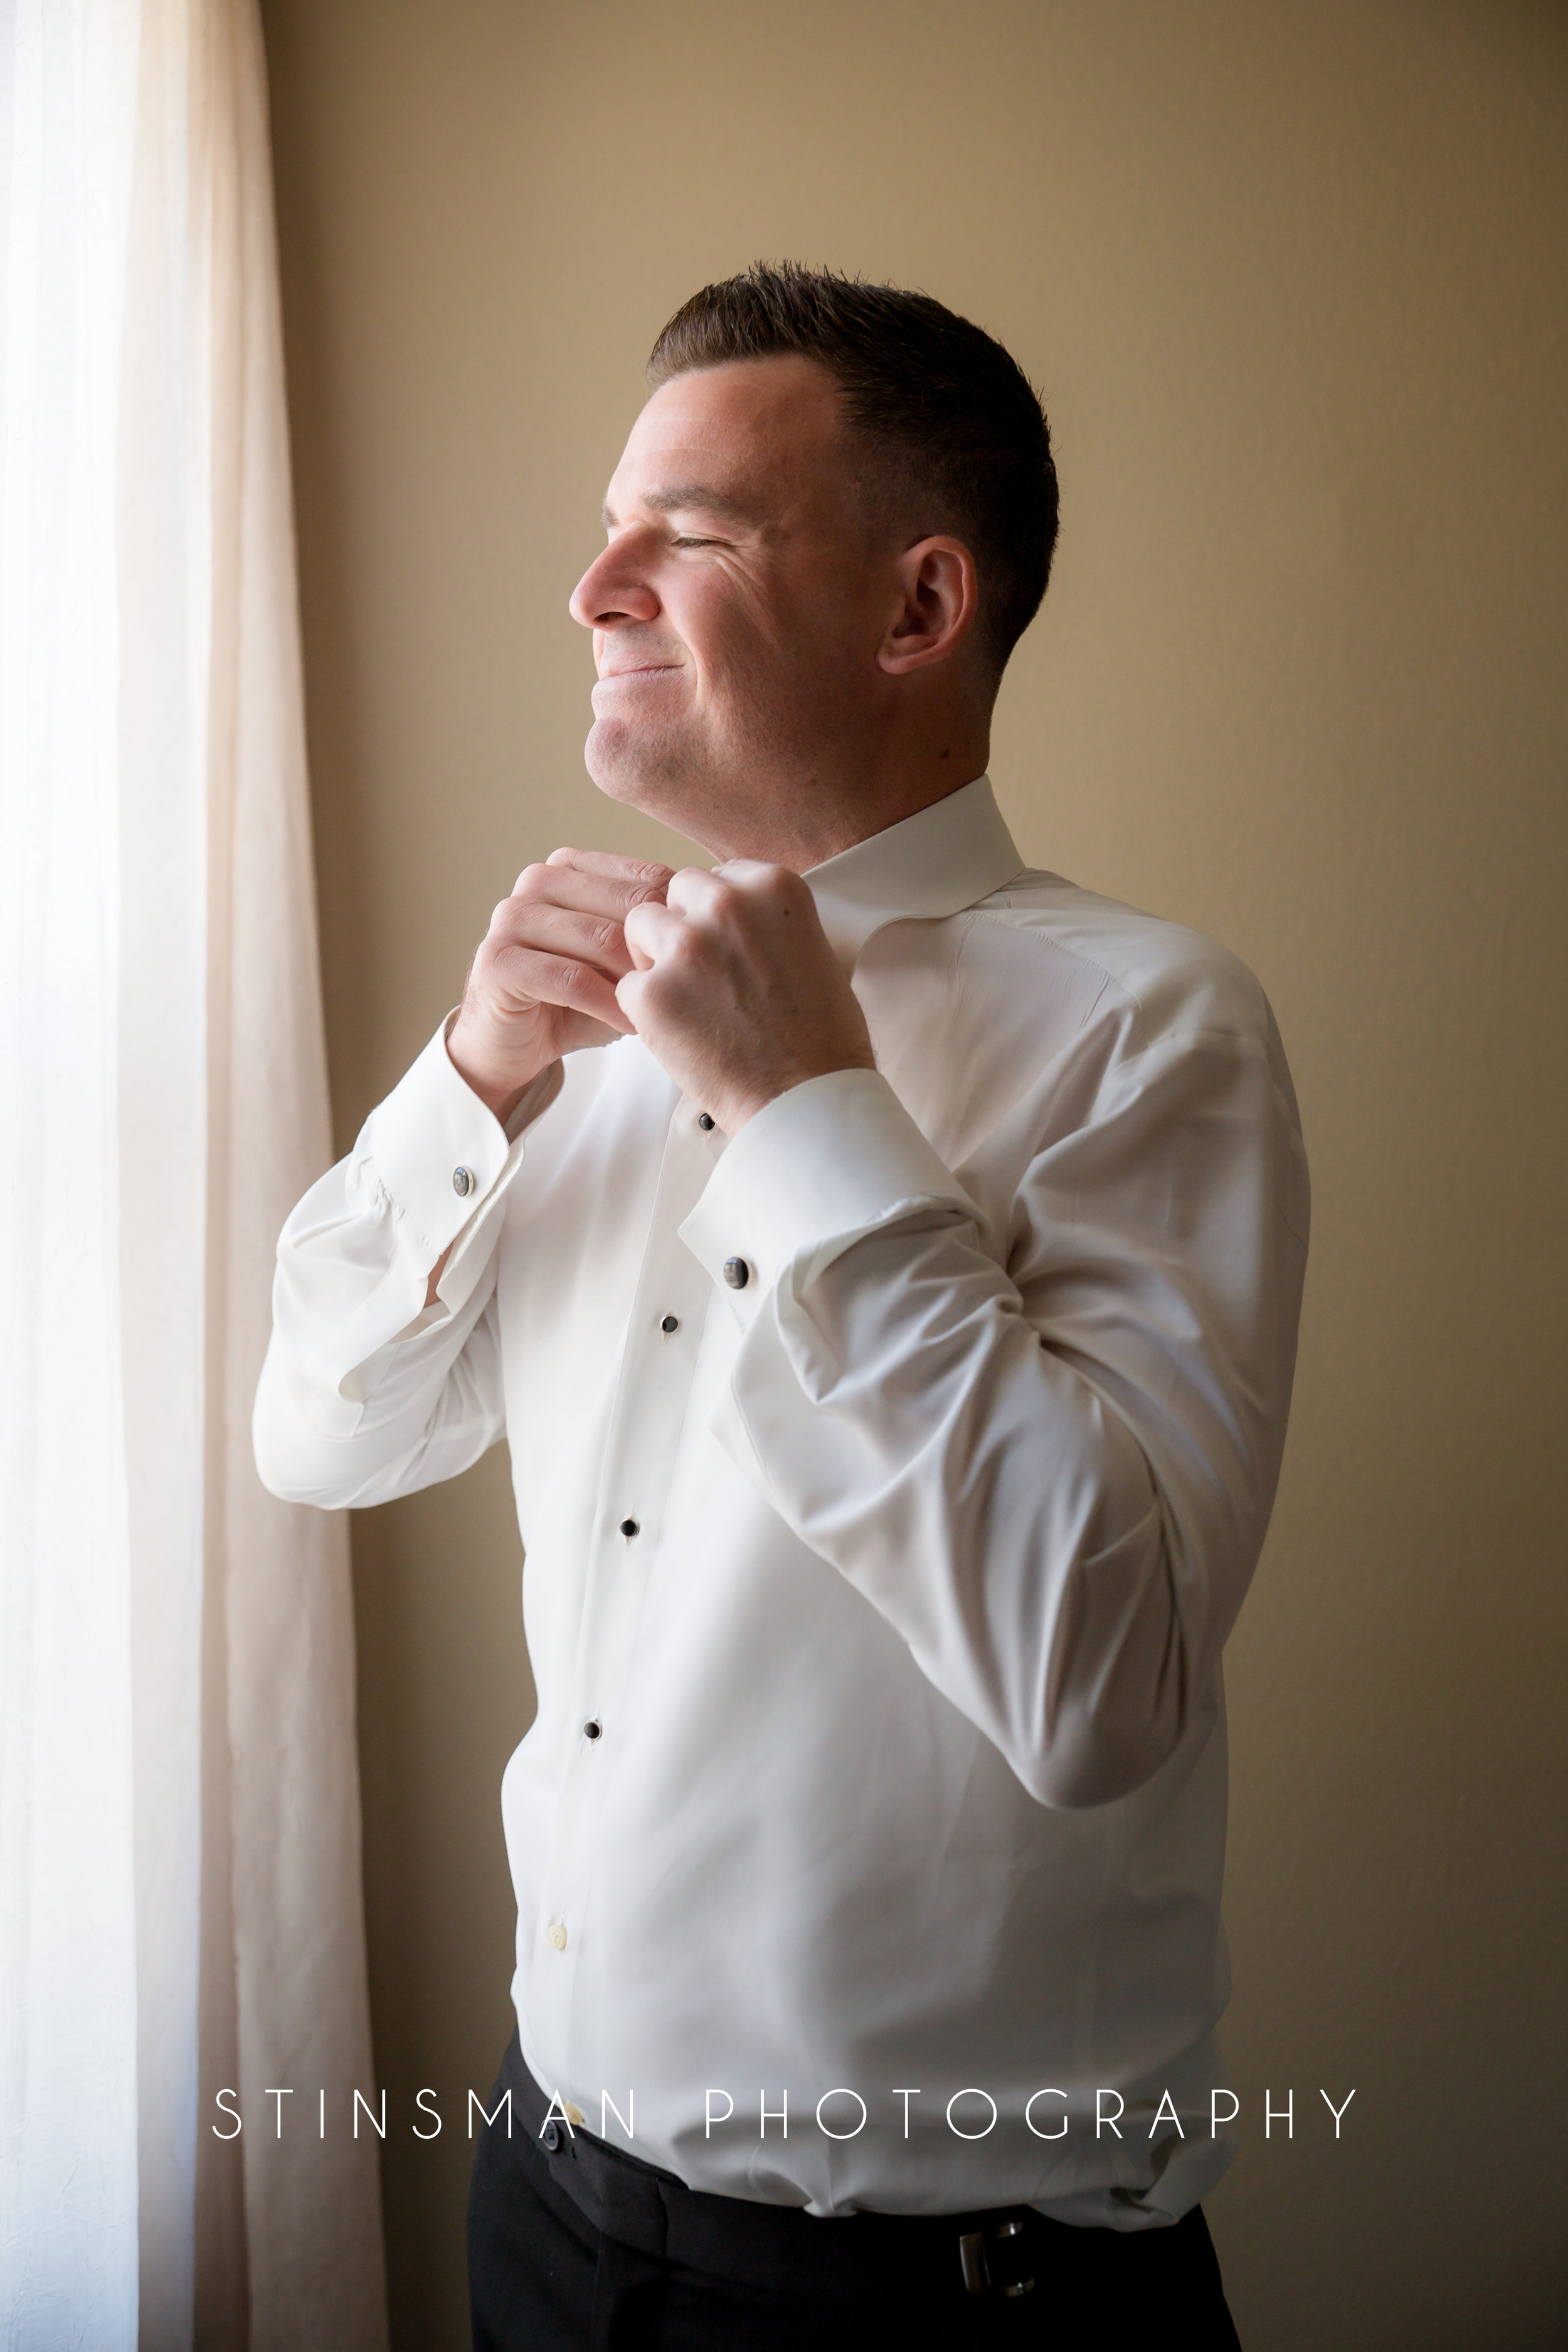 groom getting dressed for his wedding day wearing a white bow tie